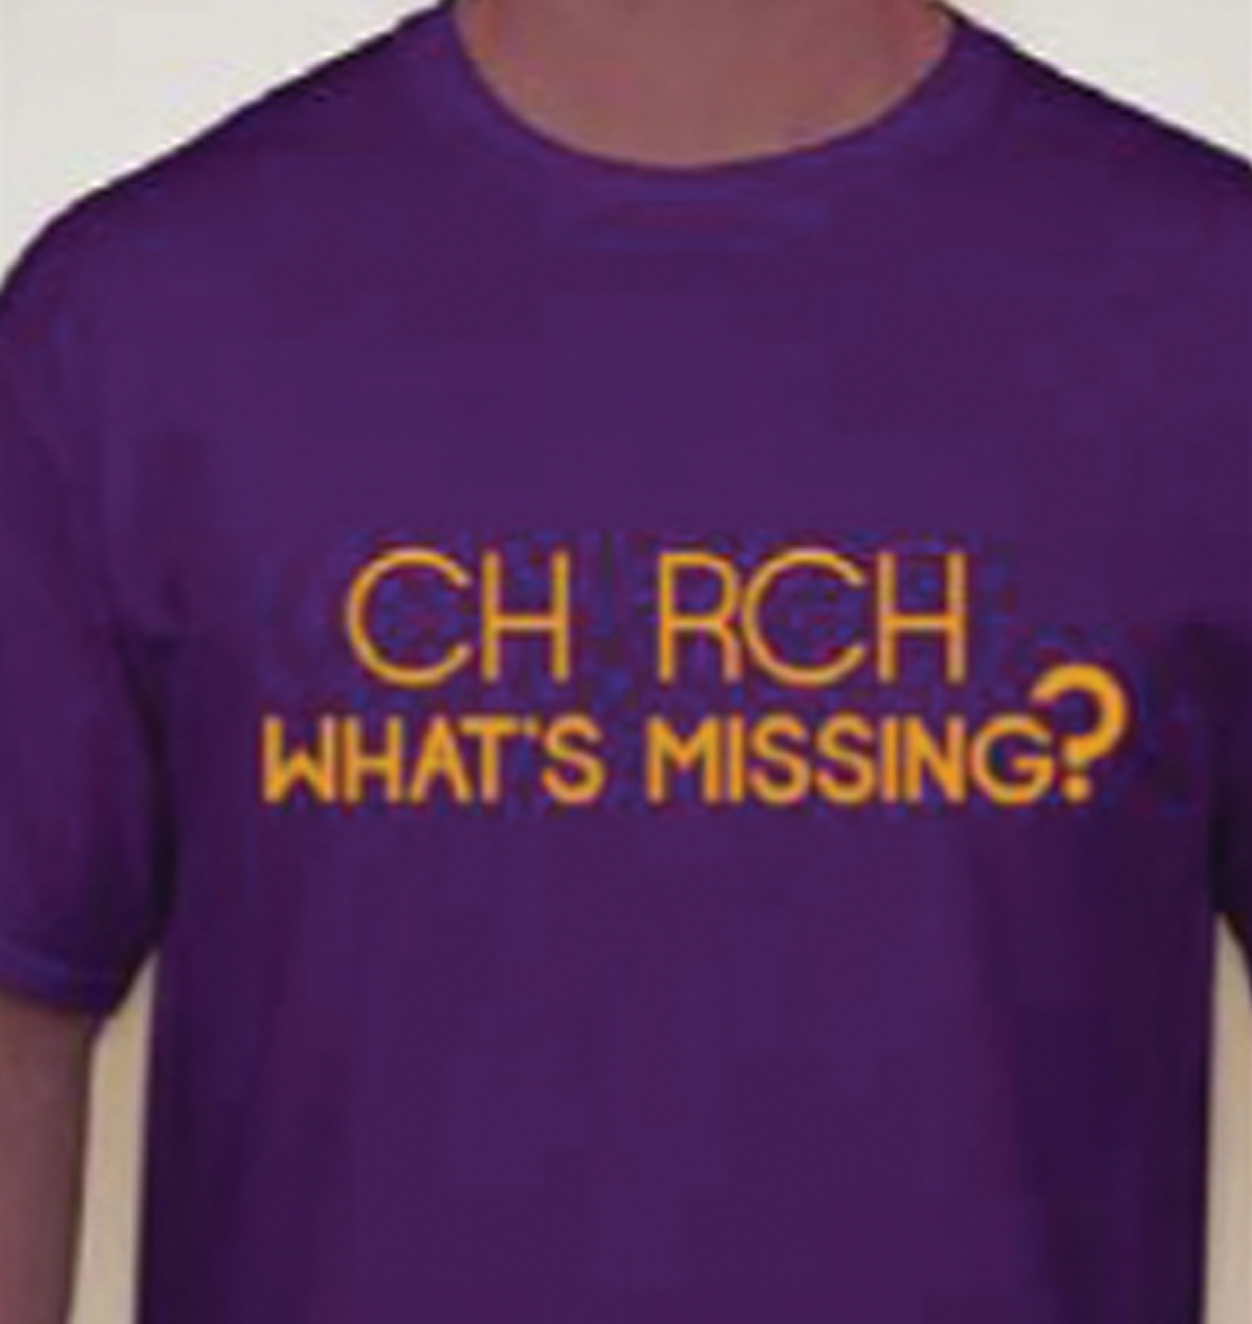 CH RCH Whats Missing? (Purple)